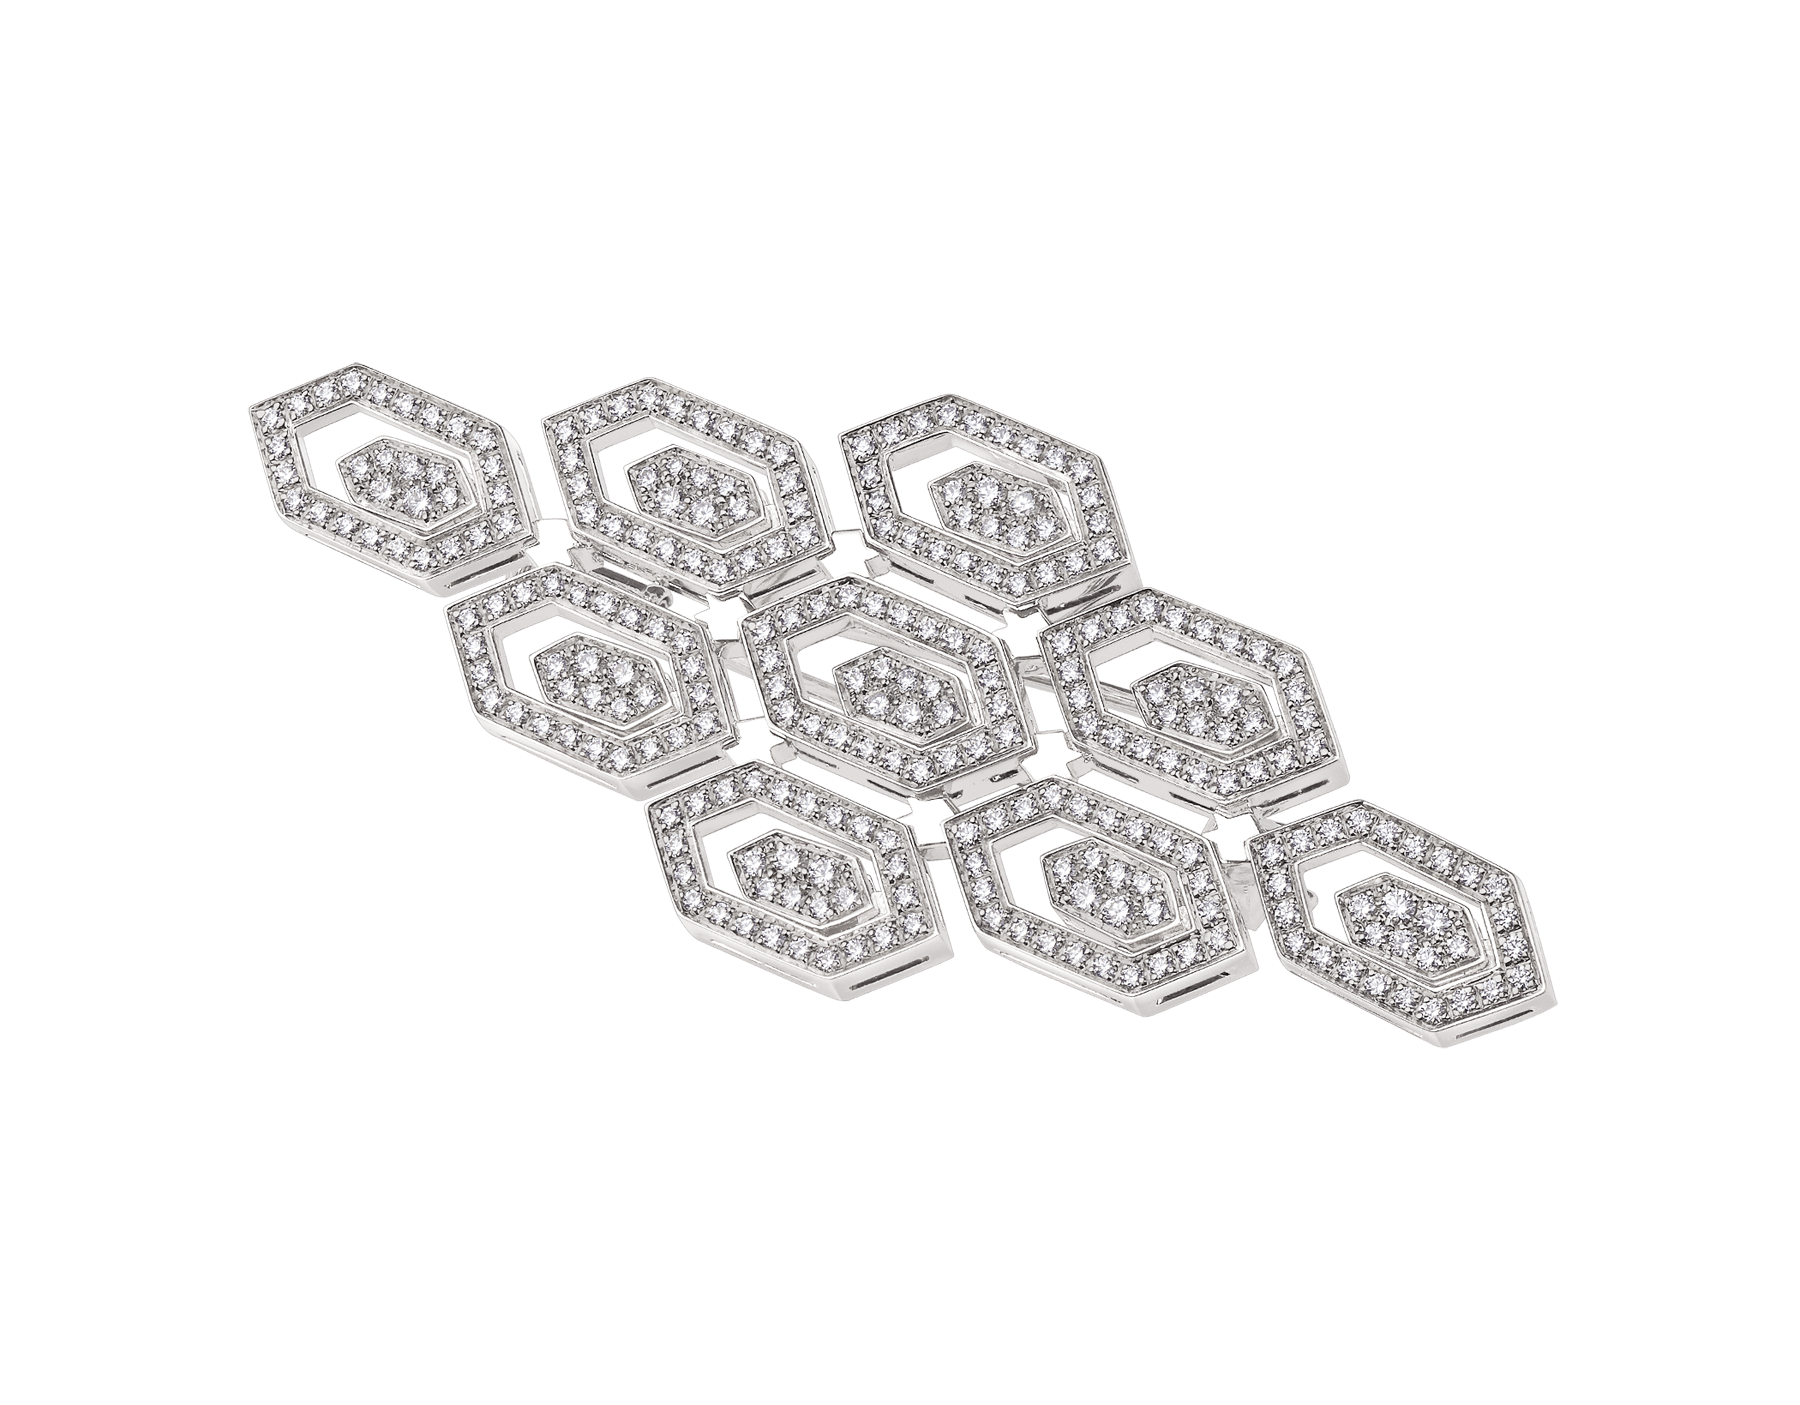 Serpenti 18 kt white gold brooch set with pavé diamonds (1.15 ct) 356120 image 1